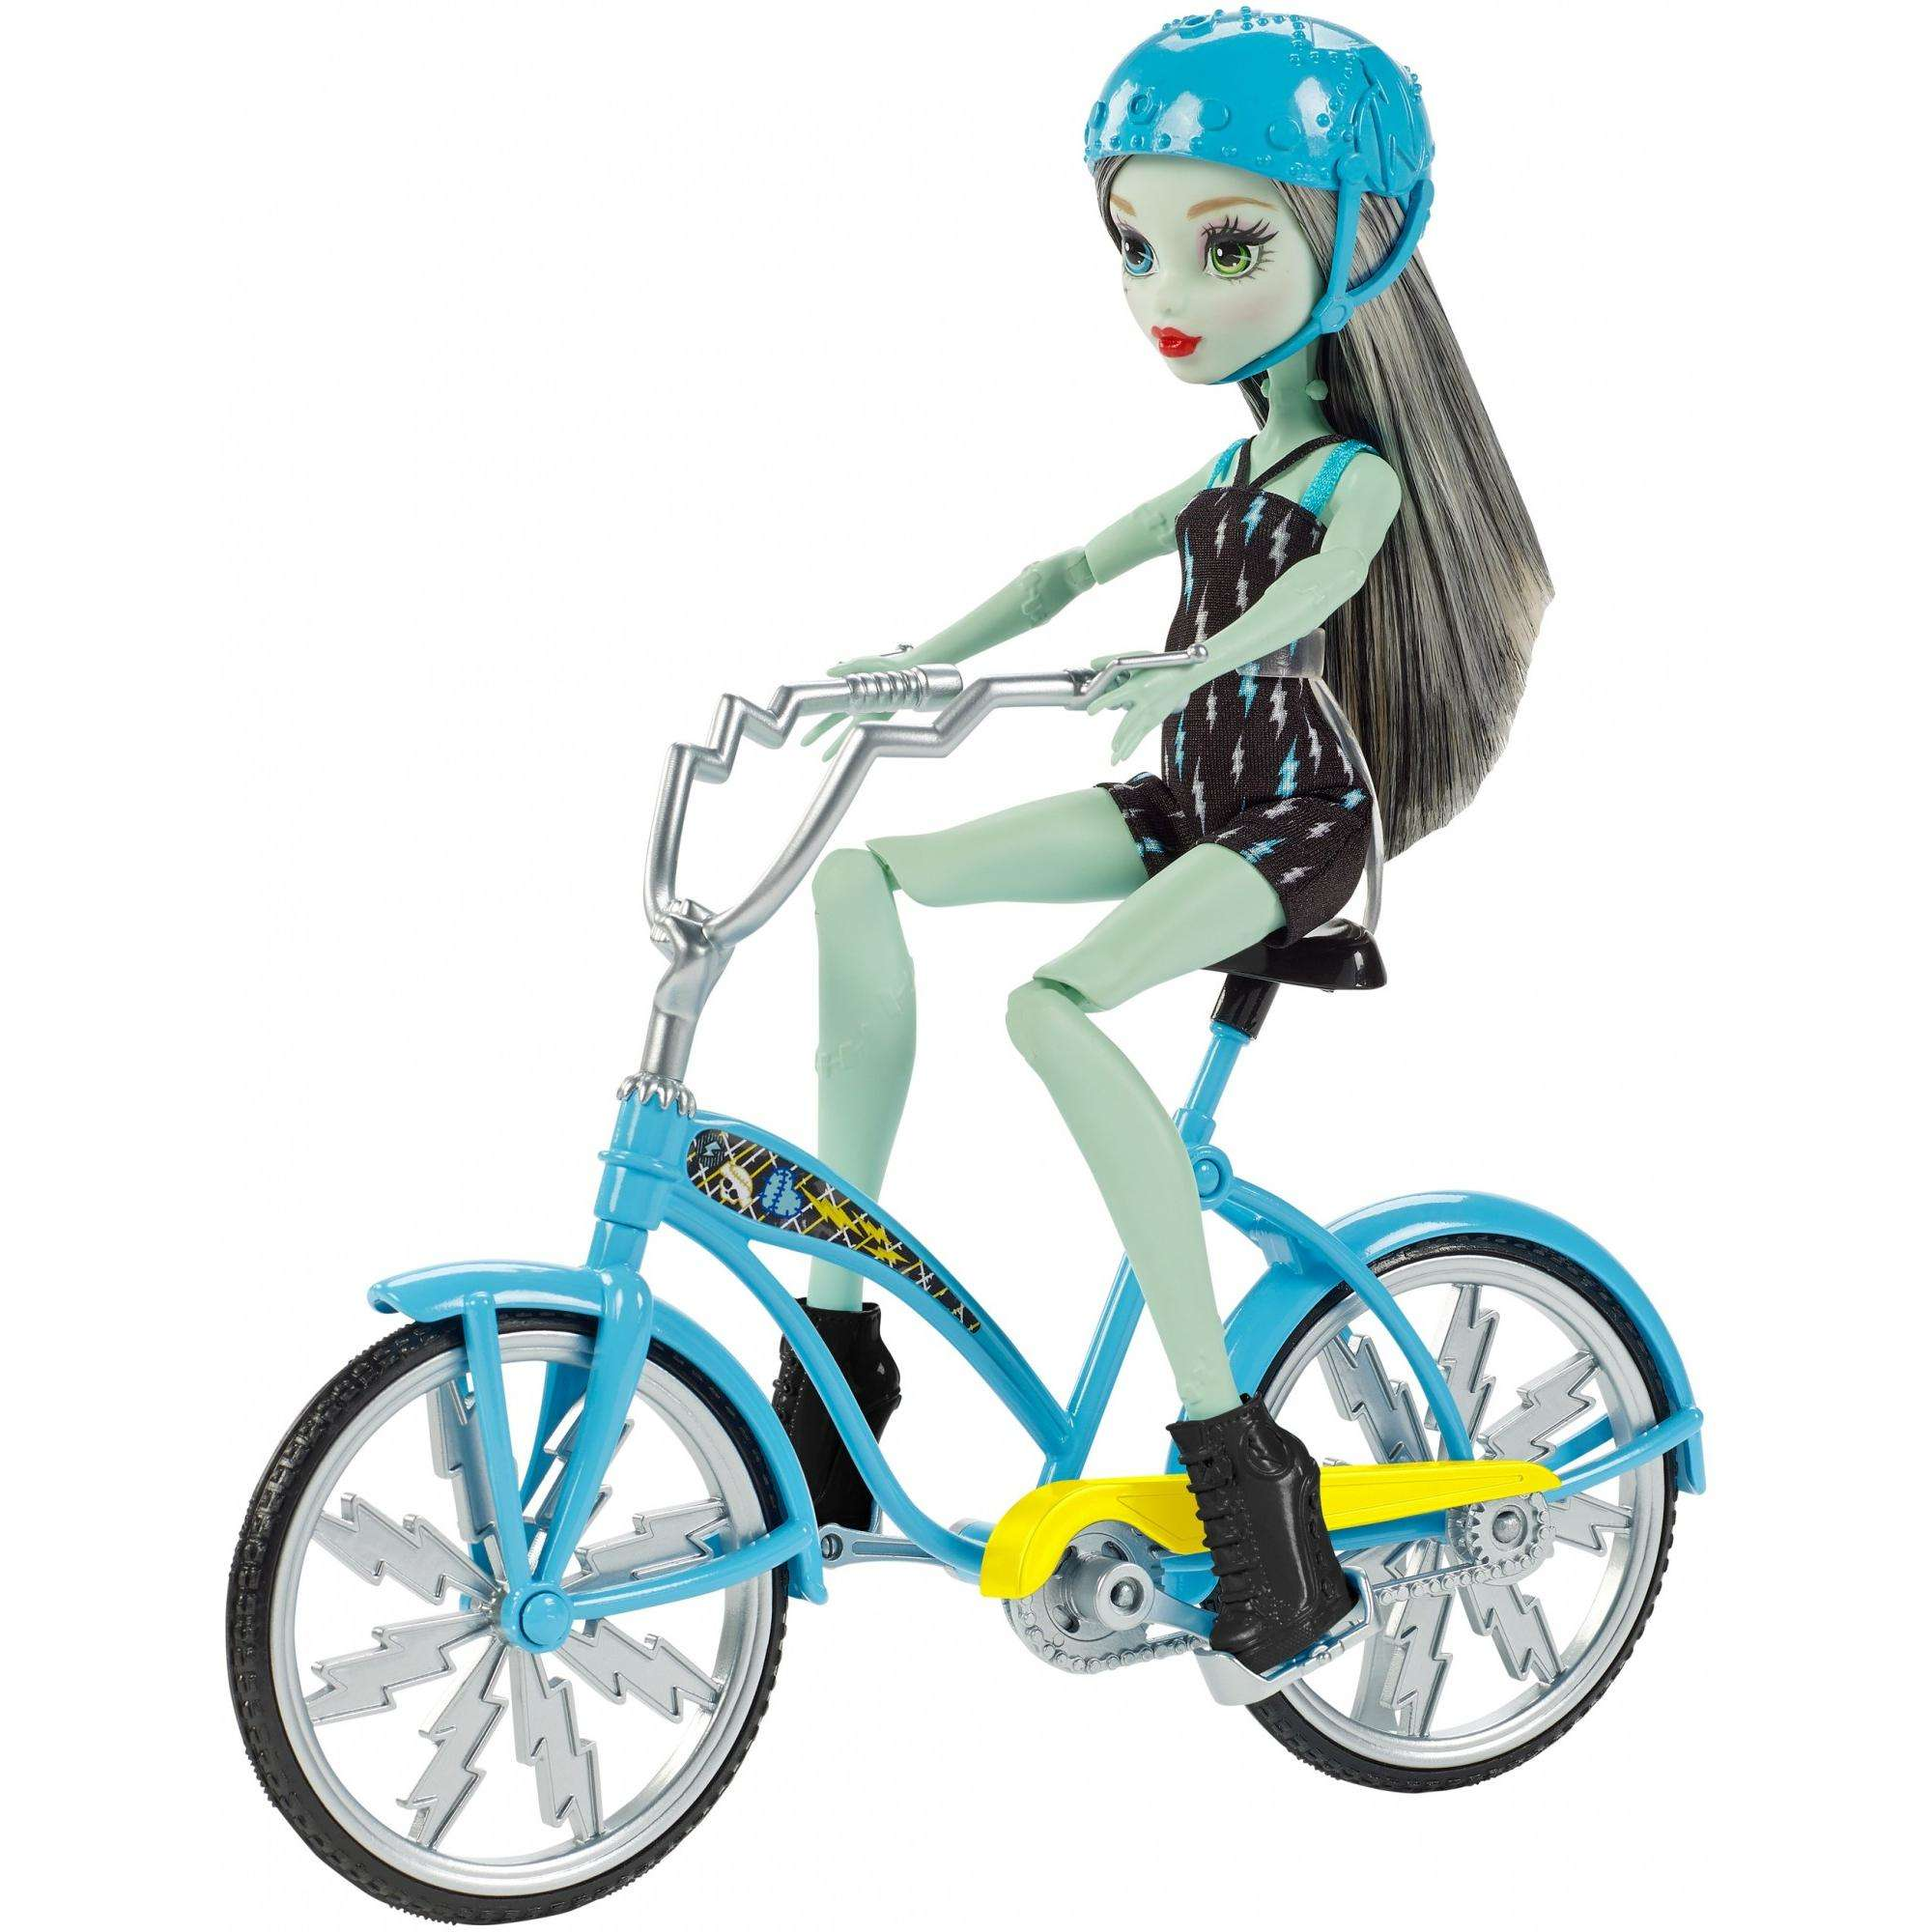 Monster High Boltin' Bicycle Frankie Stein Doll & Vehicle by Mattel